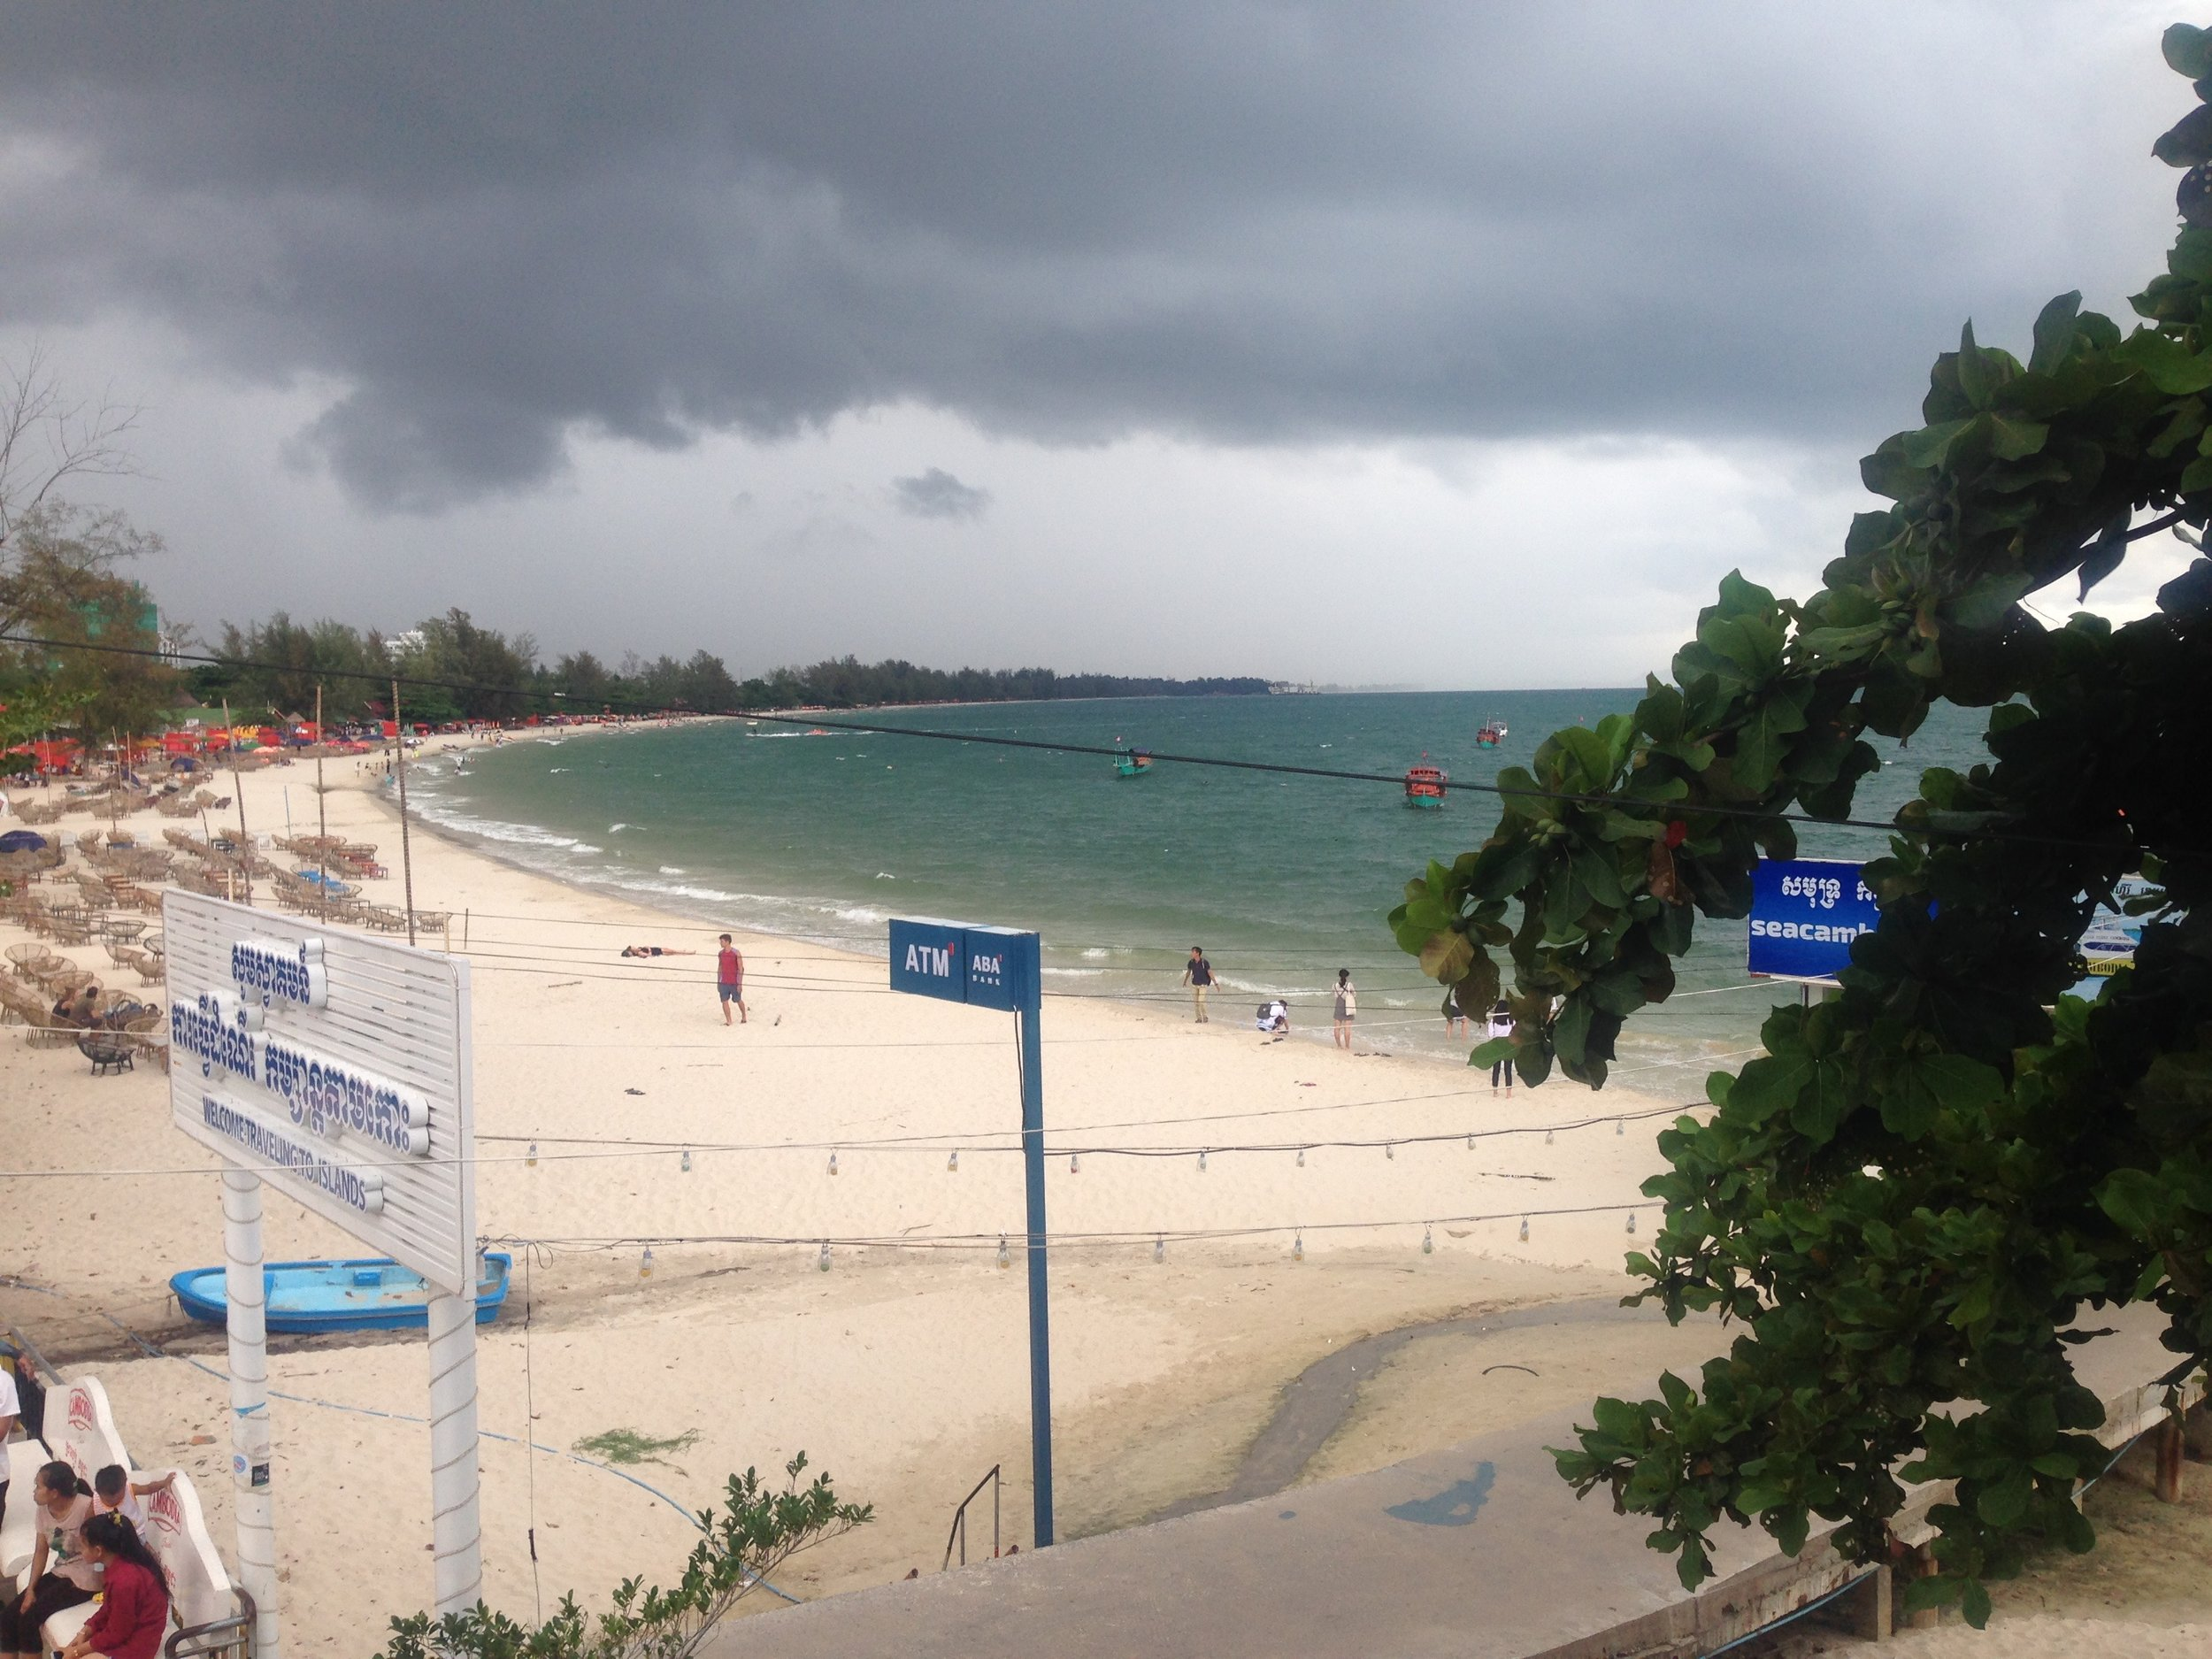 Calm before the storm in Sihanoukville - maybe an omen to get out as soon as possible?